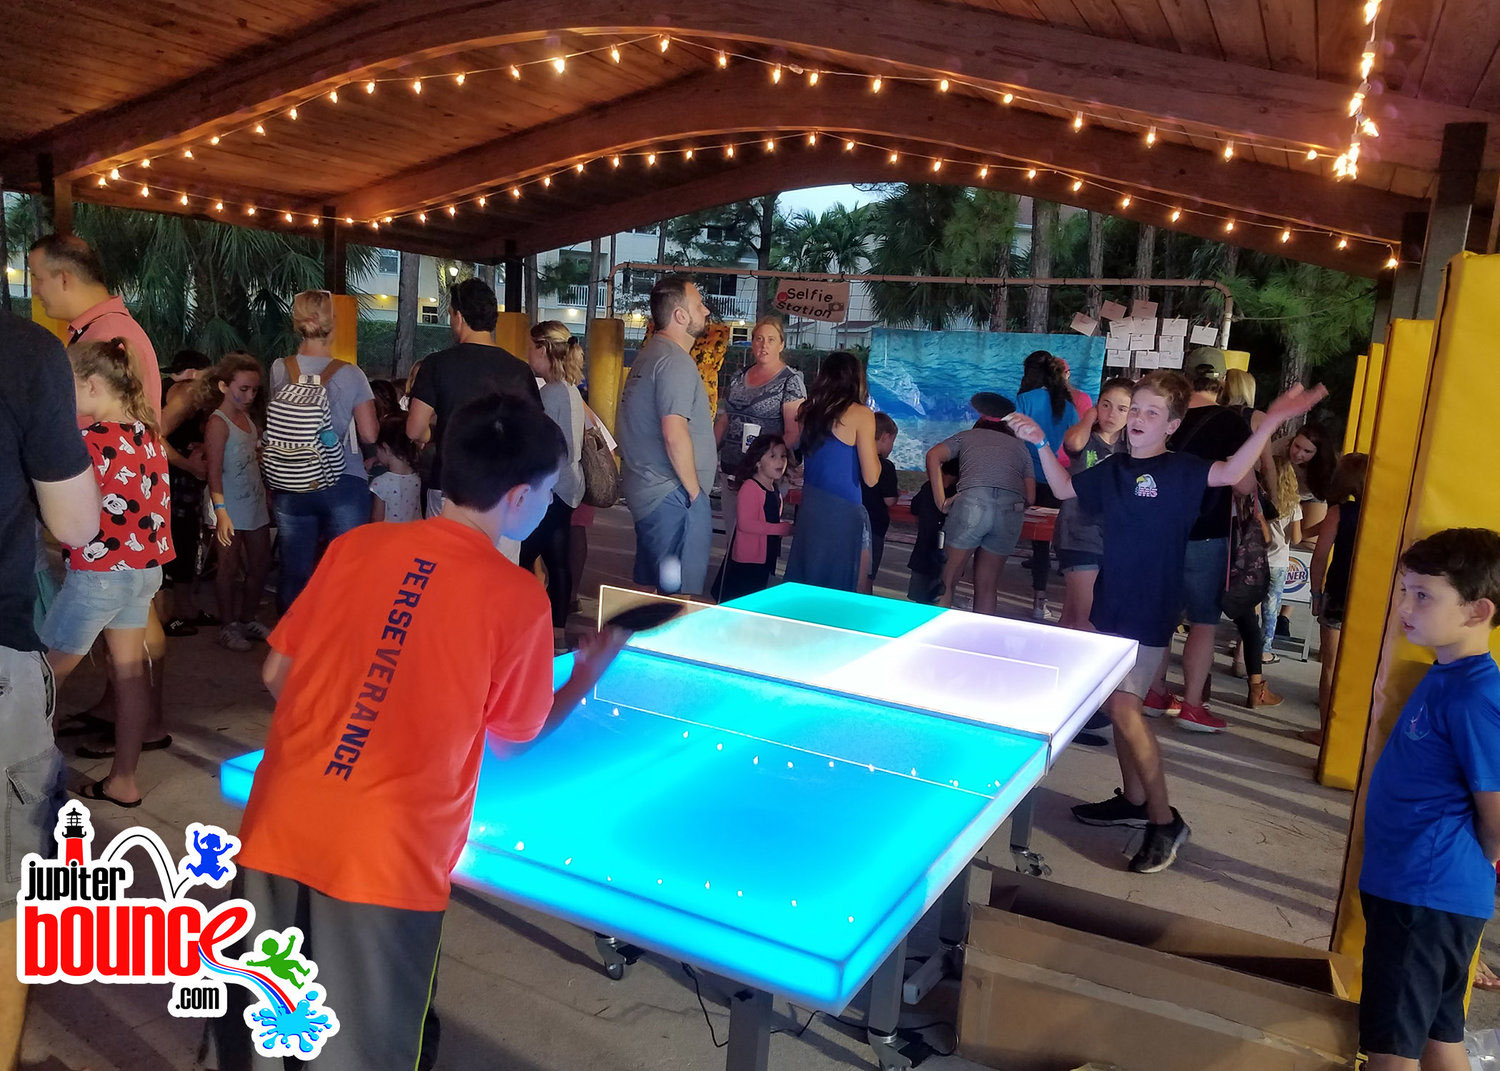 led-ping-pong-table-partyrental-eventrental.jpg